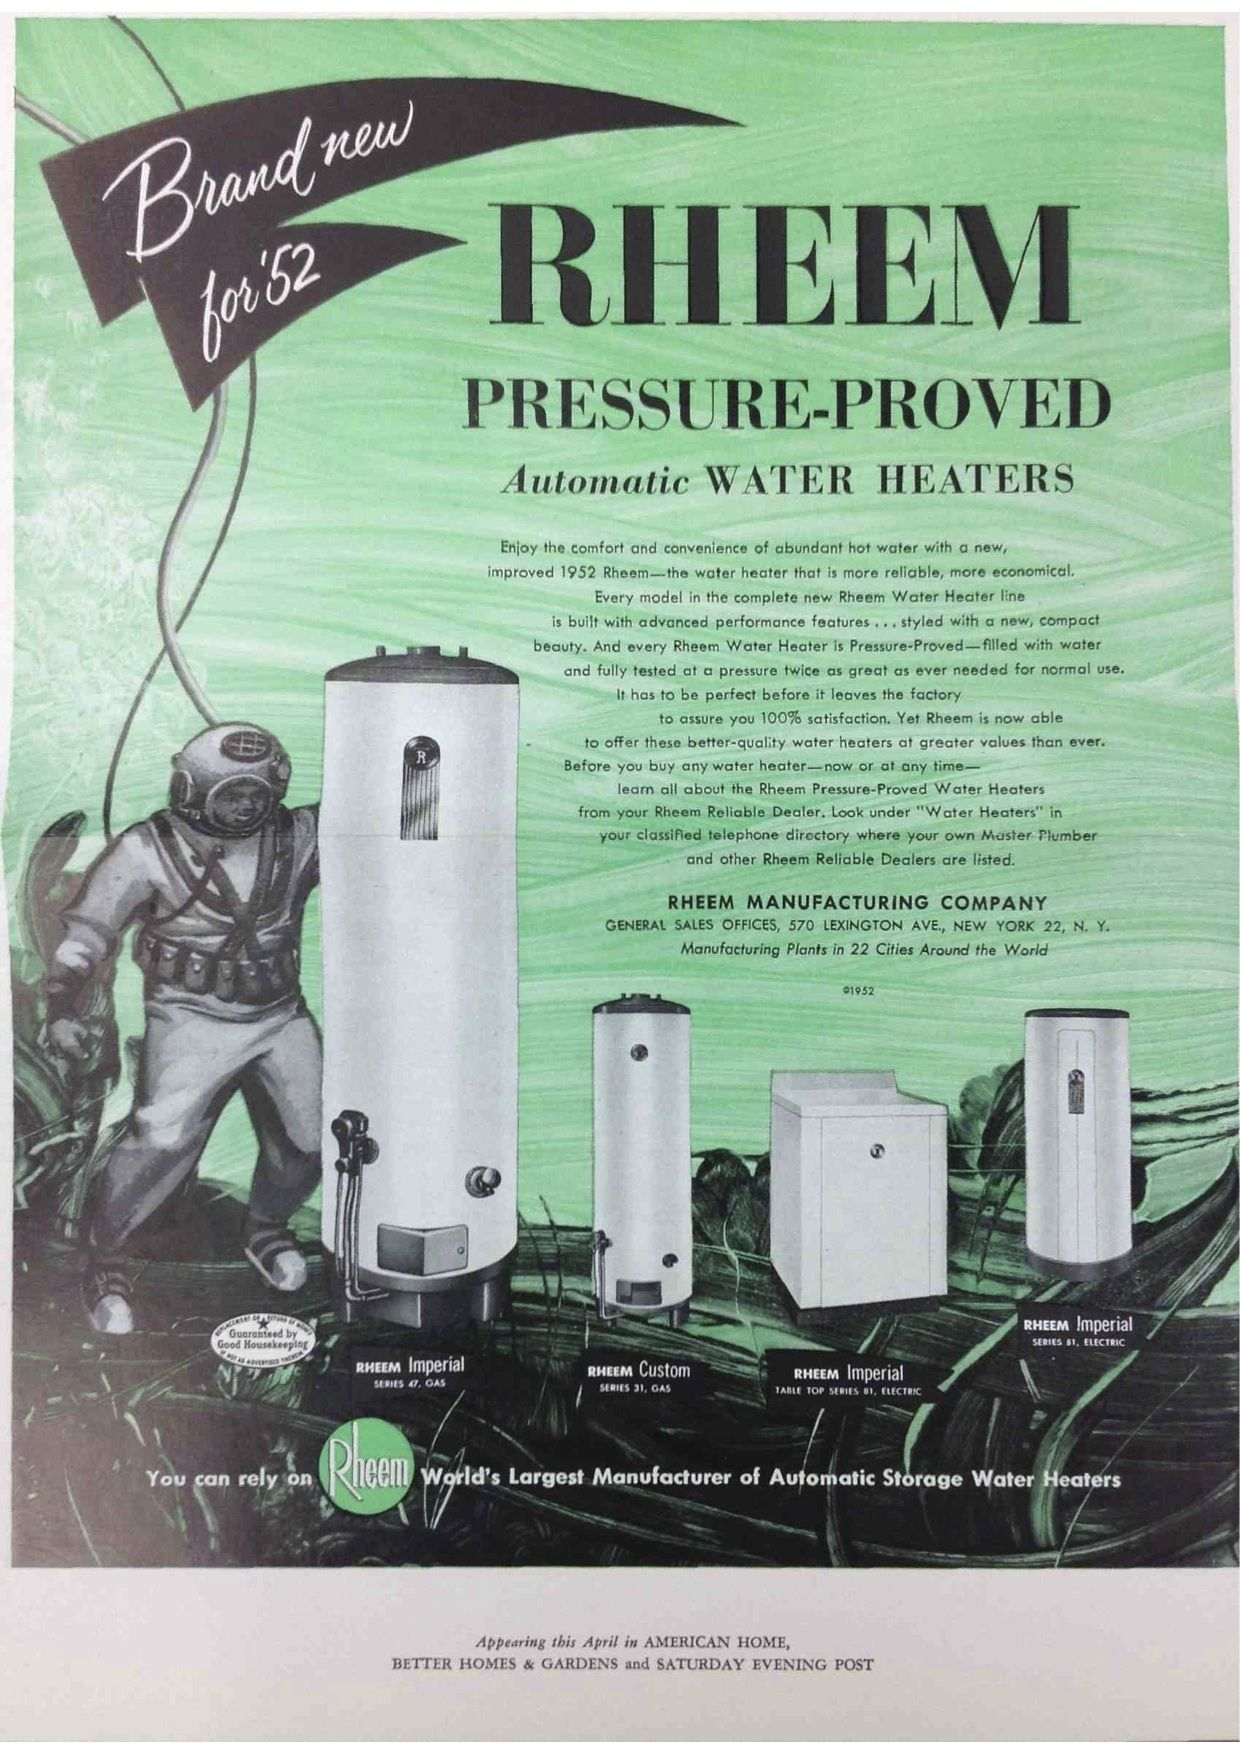 1952 Rheem Pressure Proved Water Heater Vintage Ad Appeared In Better Homes Gardens American Home And The Saturd Water Heater Lexington Company Vintage Ads